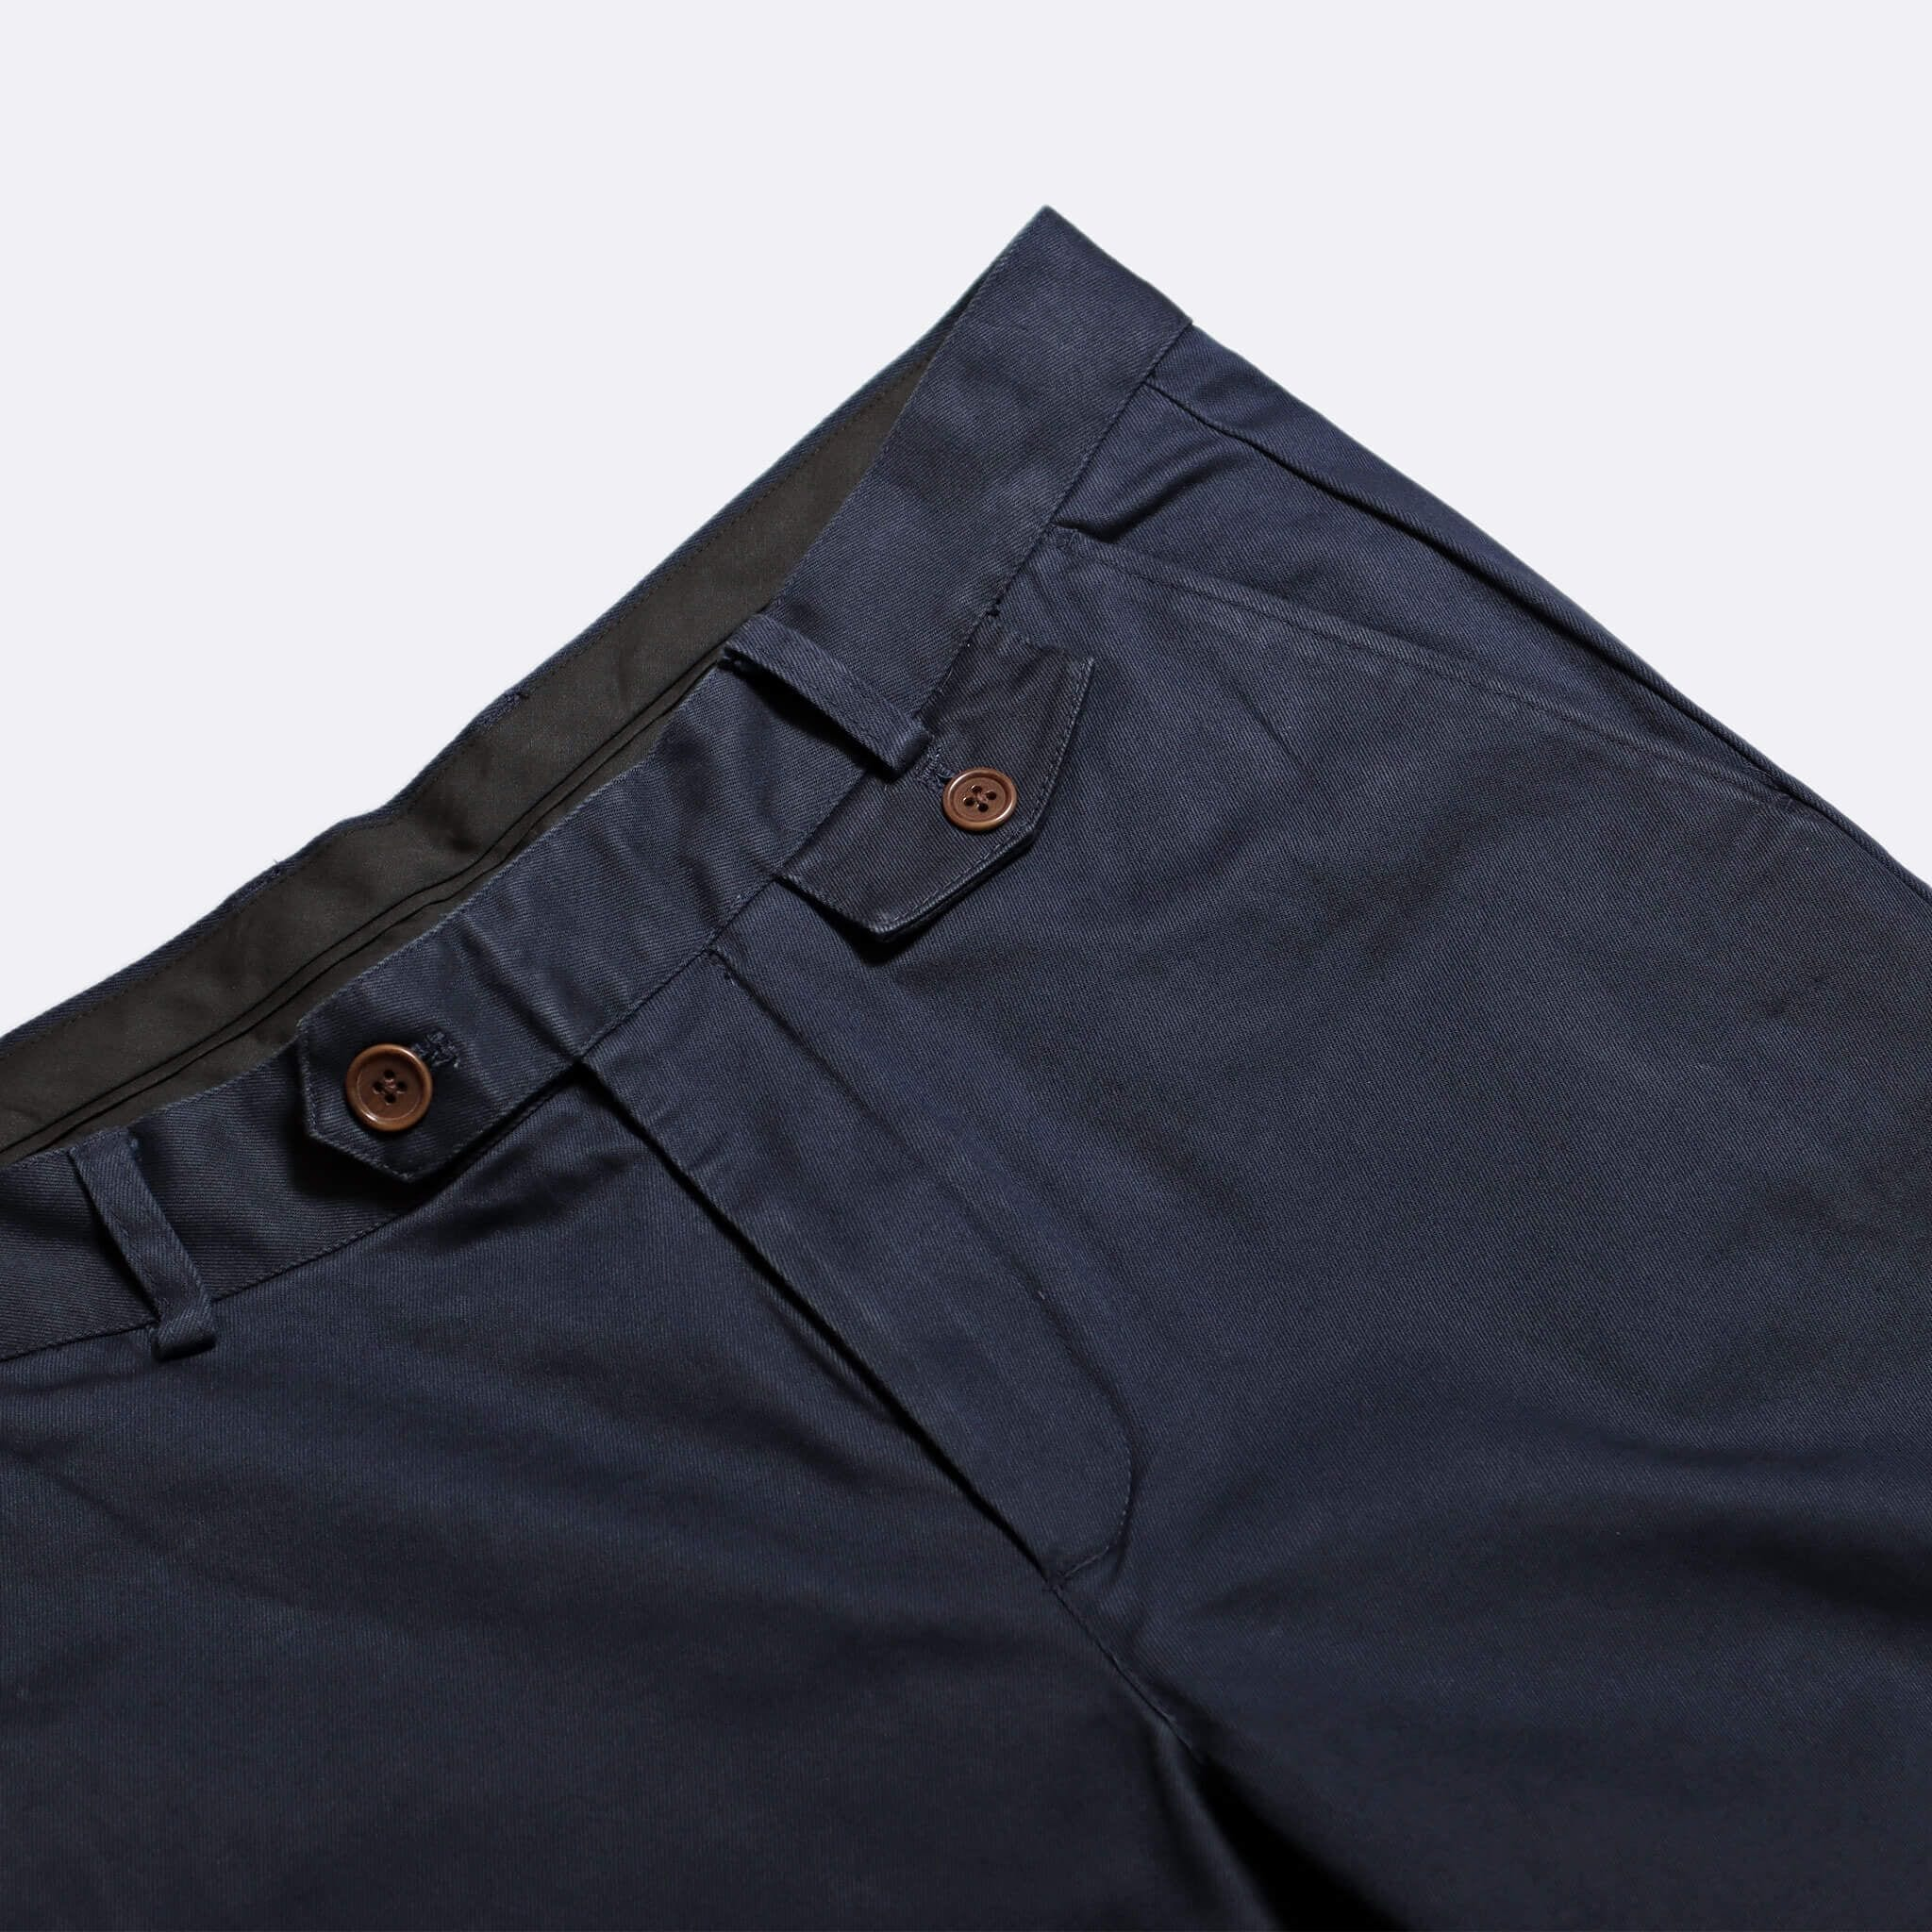 Far Afield Tricker Trousers a Ensign Blue Organic Cotton Twill Classic Tailored Smart Casual Trousers 2